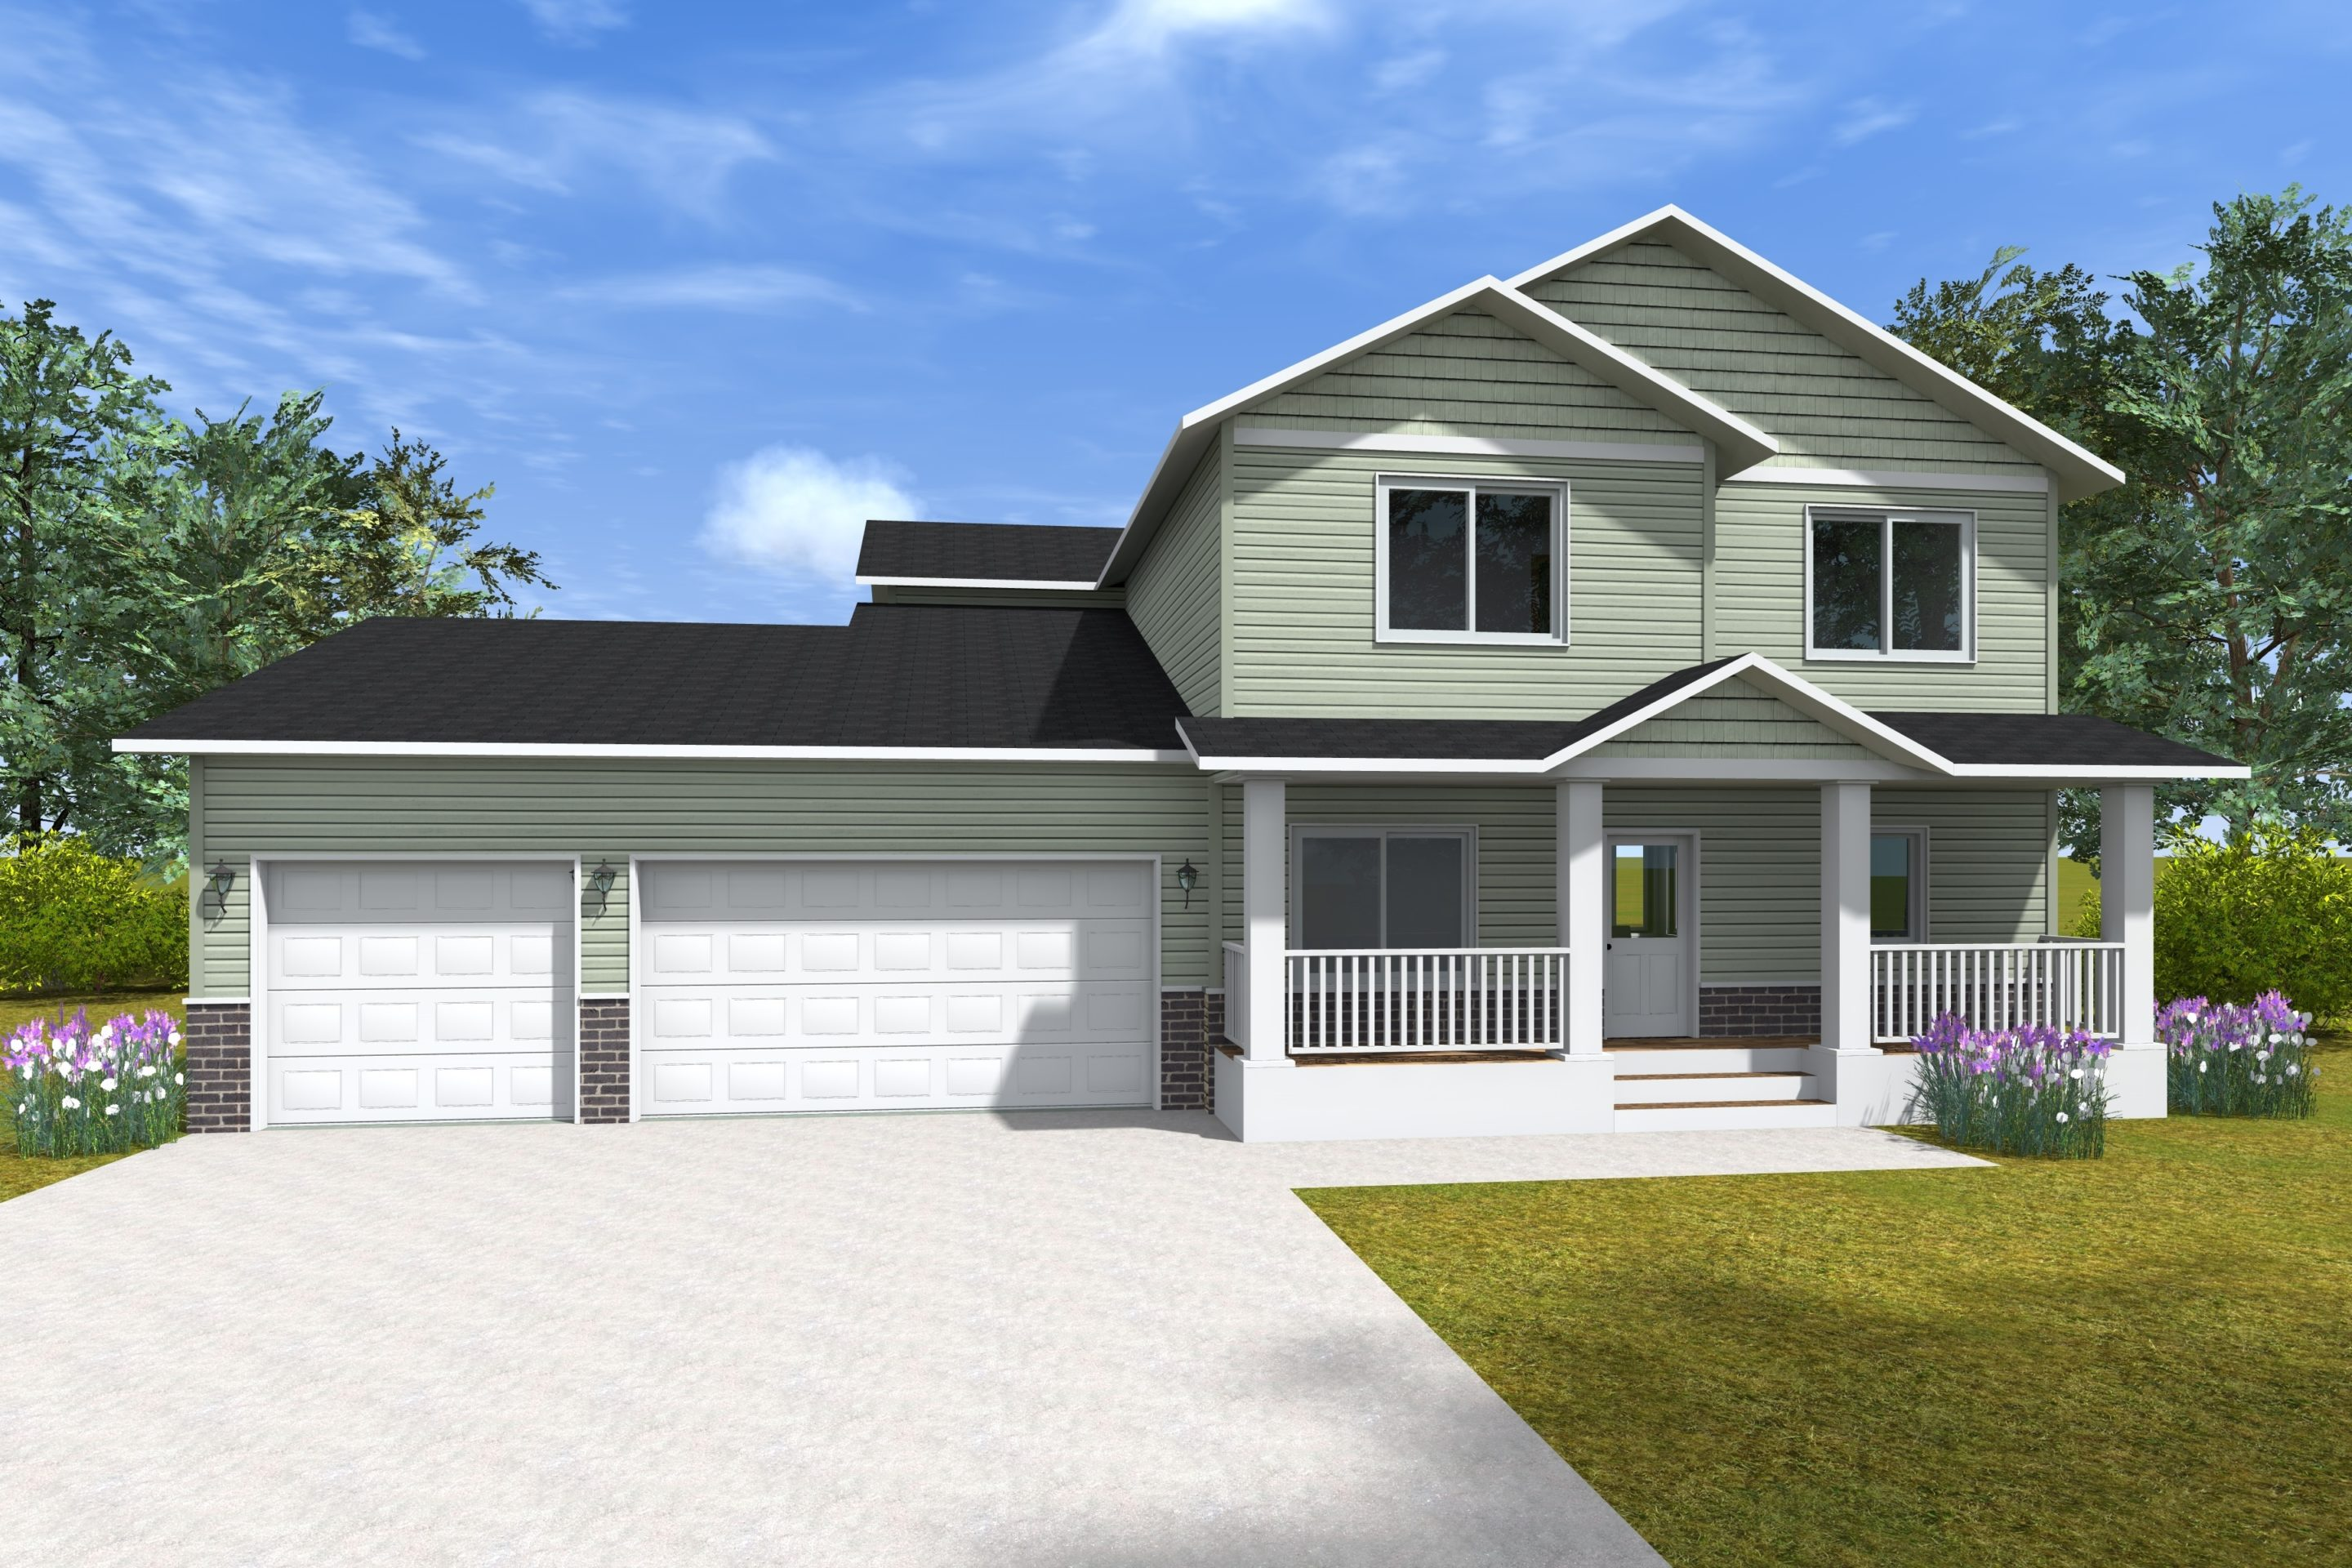 Wyndom drawing - green house with two garage